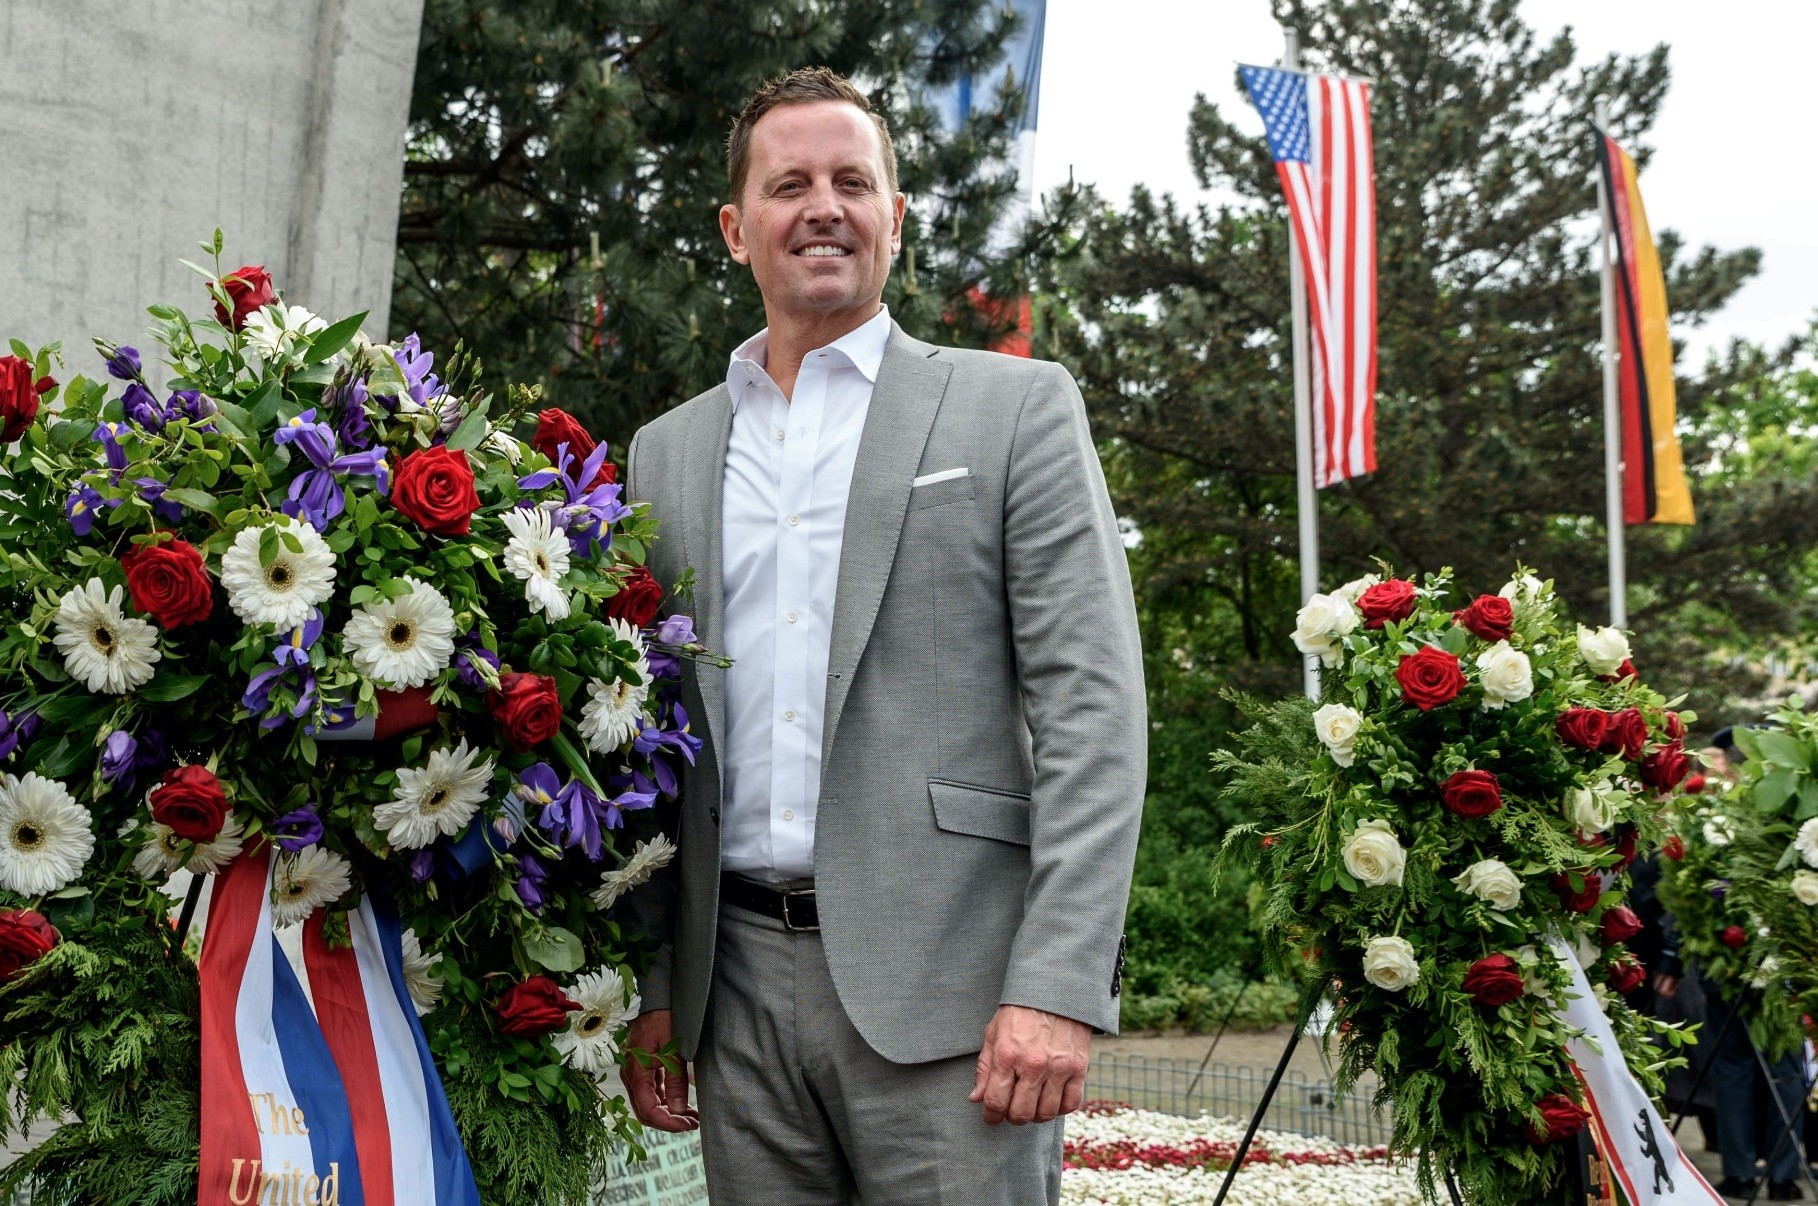 U.S. ambassador to Germany Richard A. Grenell stands beside a wreath in Berlin, May 12.